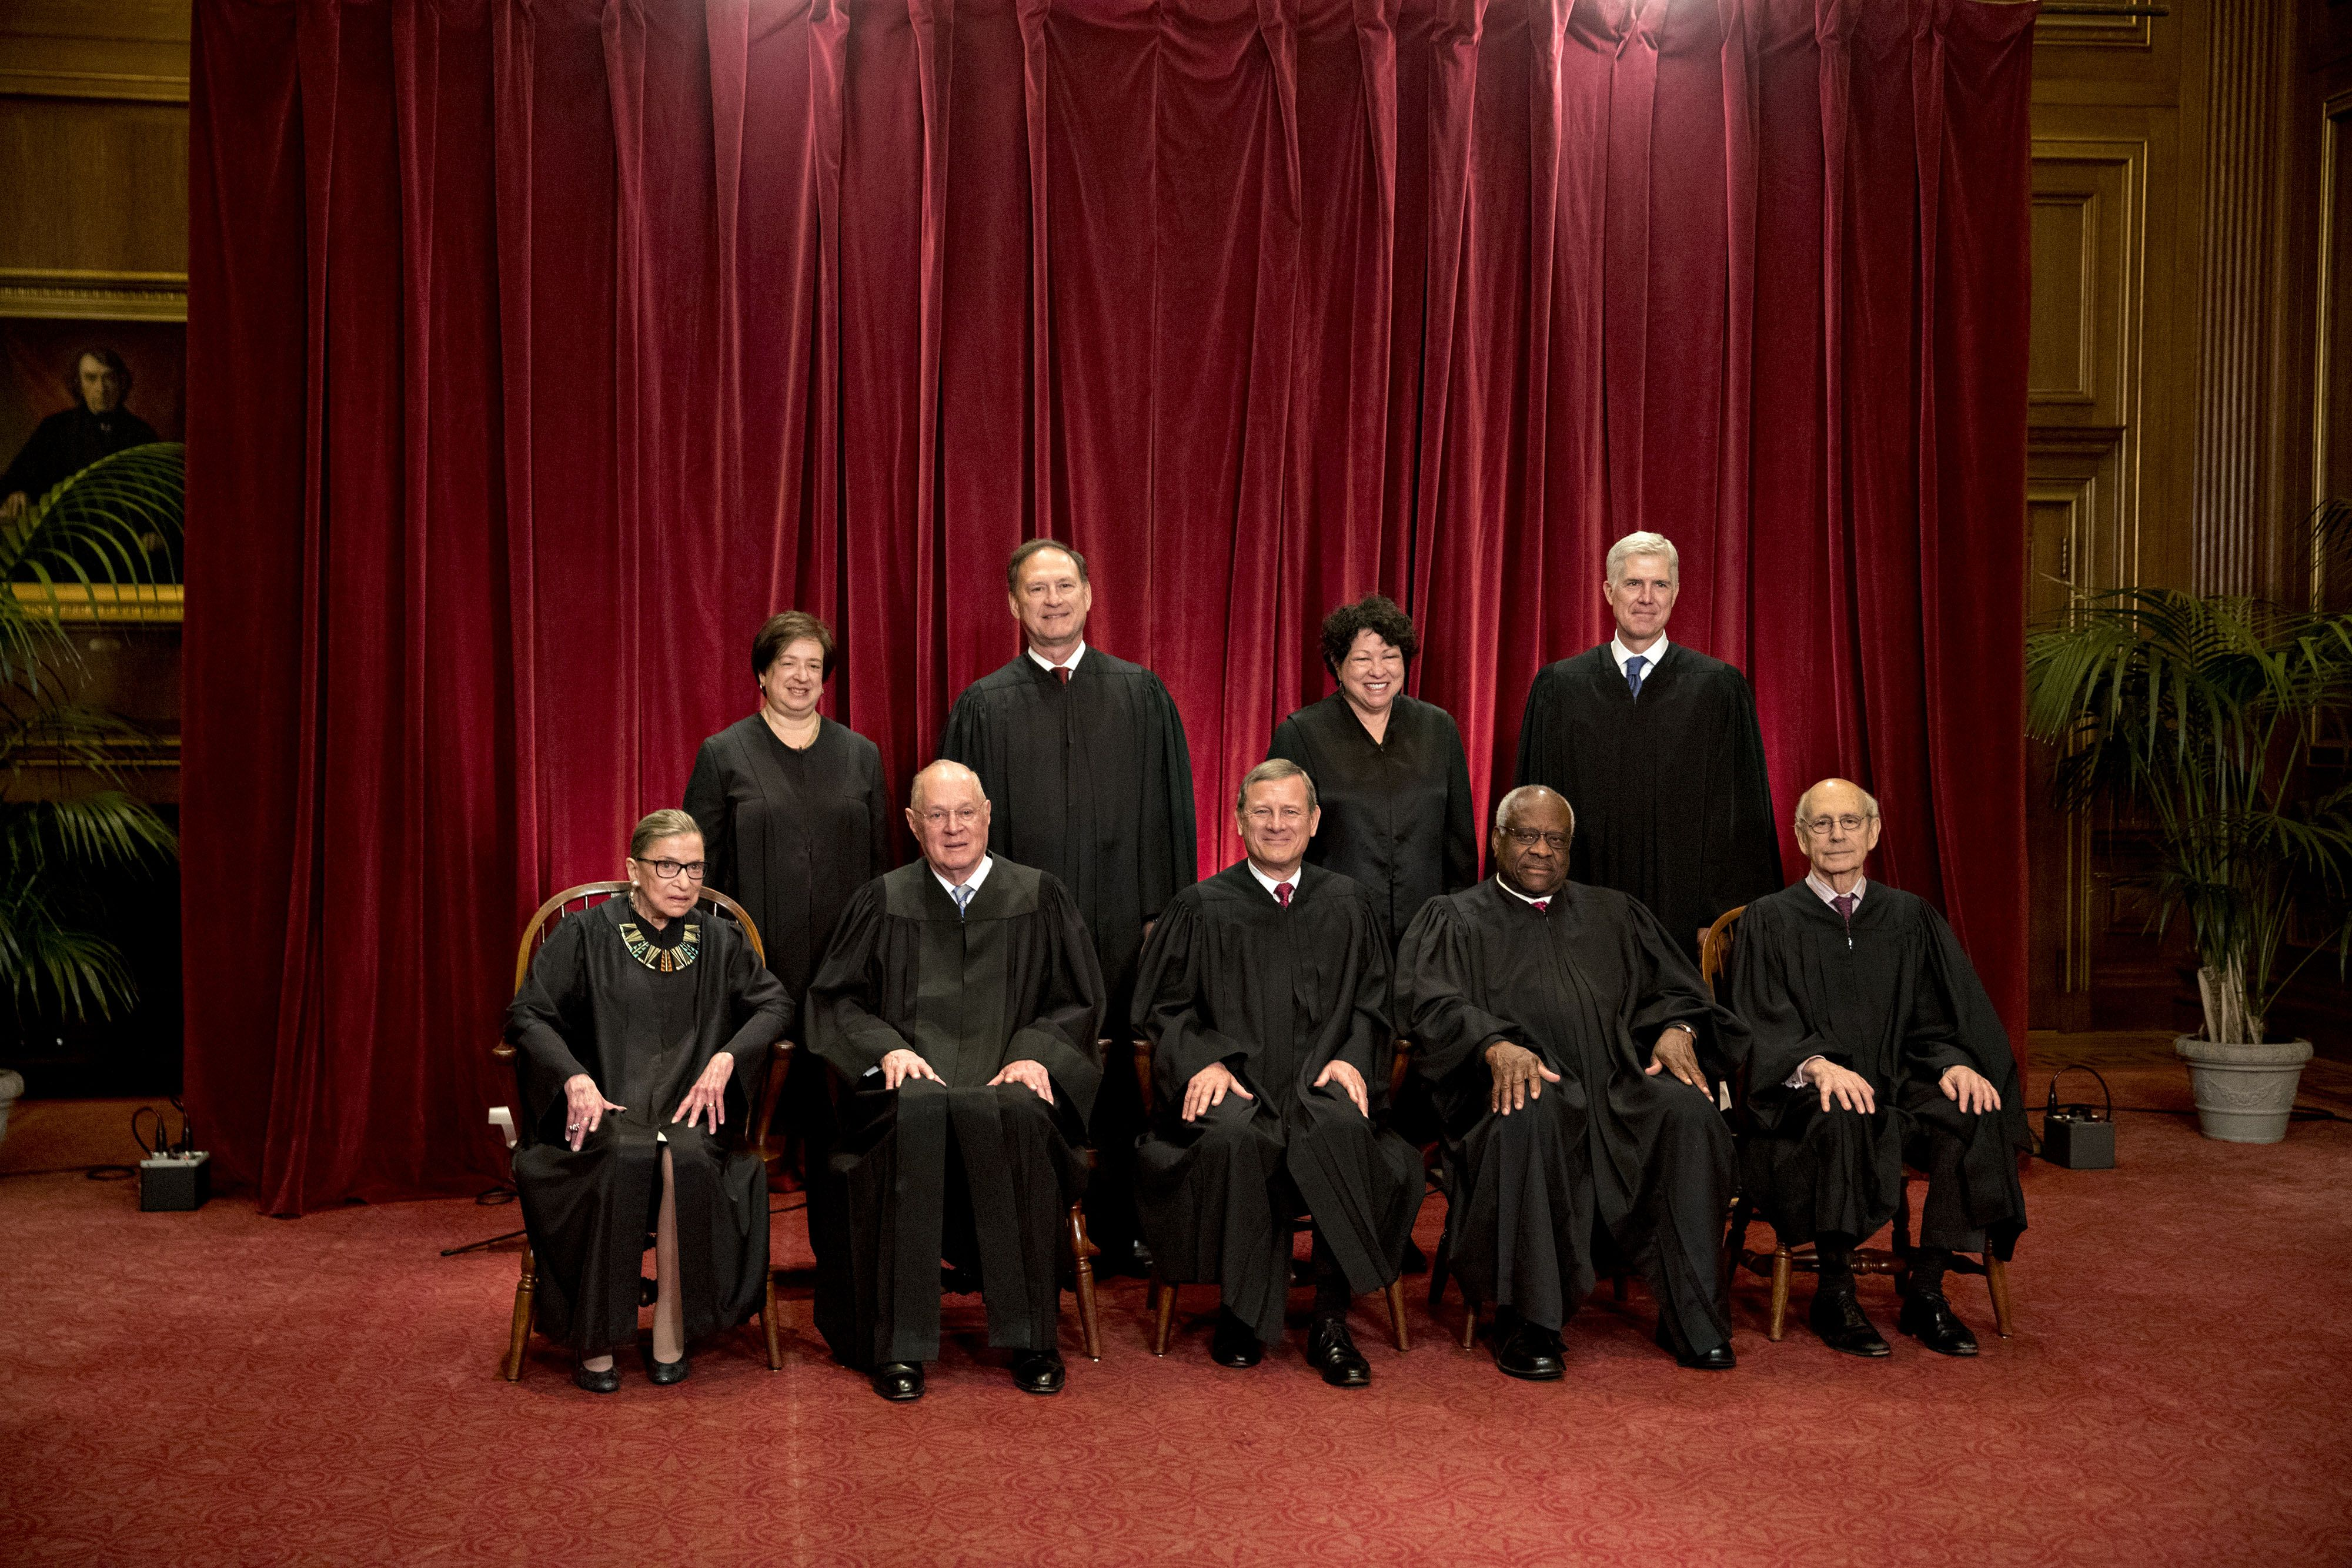 (L-R) Associate Justice Ruth Bader Ginsburg, Associate Justice Anthony Kennedy, Chief Justice John Roberts, Associate Justice Clarence Thomas, and Associate Justice Stephen Breyer. Standing left to right; Associate Justice Elena Kagan, Associate Justice Samuel Alito Jr., Associate Justice Sonia Sotomayor, and Associate Justice Neil Gorsuch during their formal group photograph in the East Conference Room of the Supreme Court in Washington, D.C., U.S., on Thursday, June 1, 2017. | Source: Getty Images